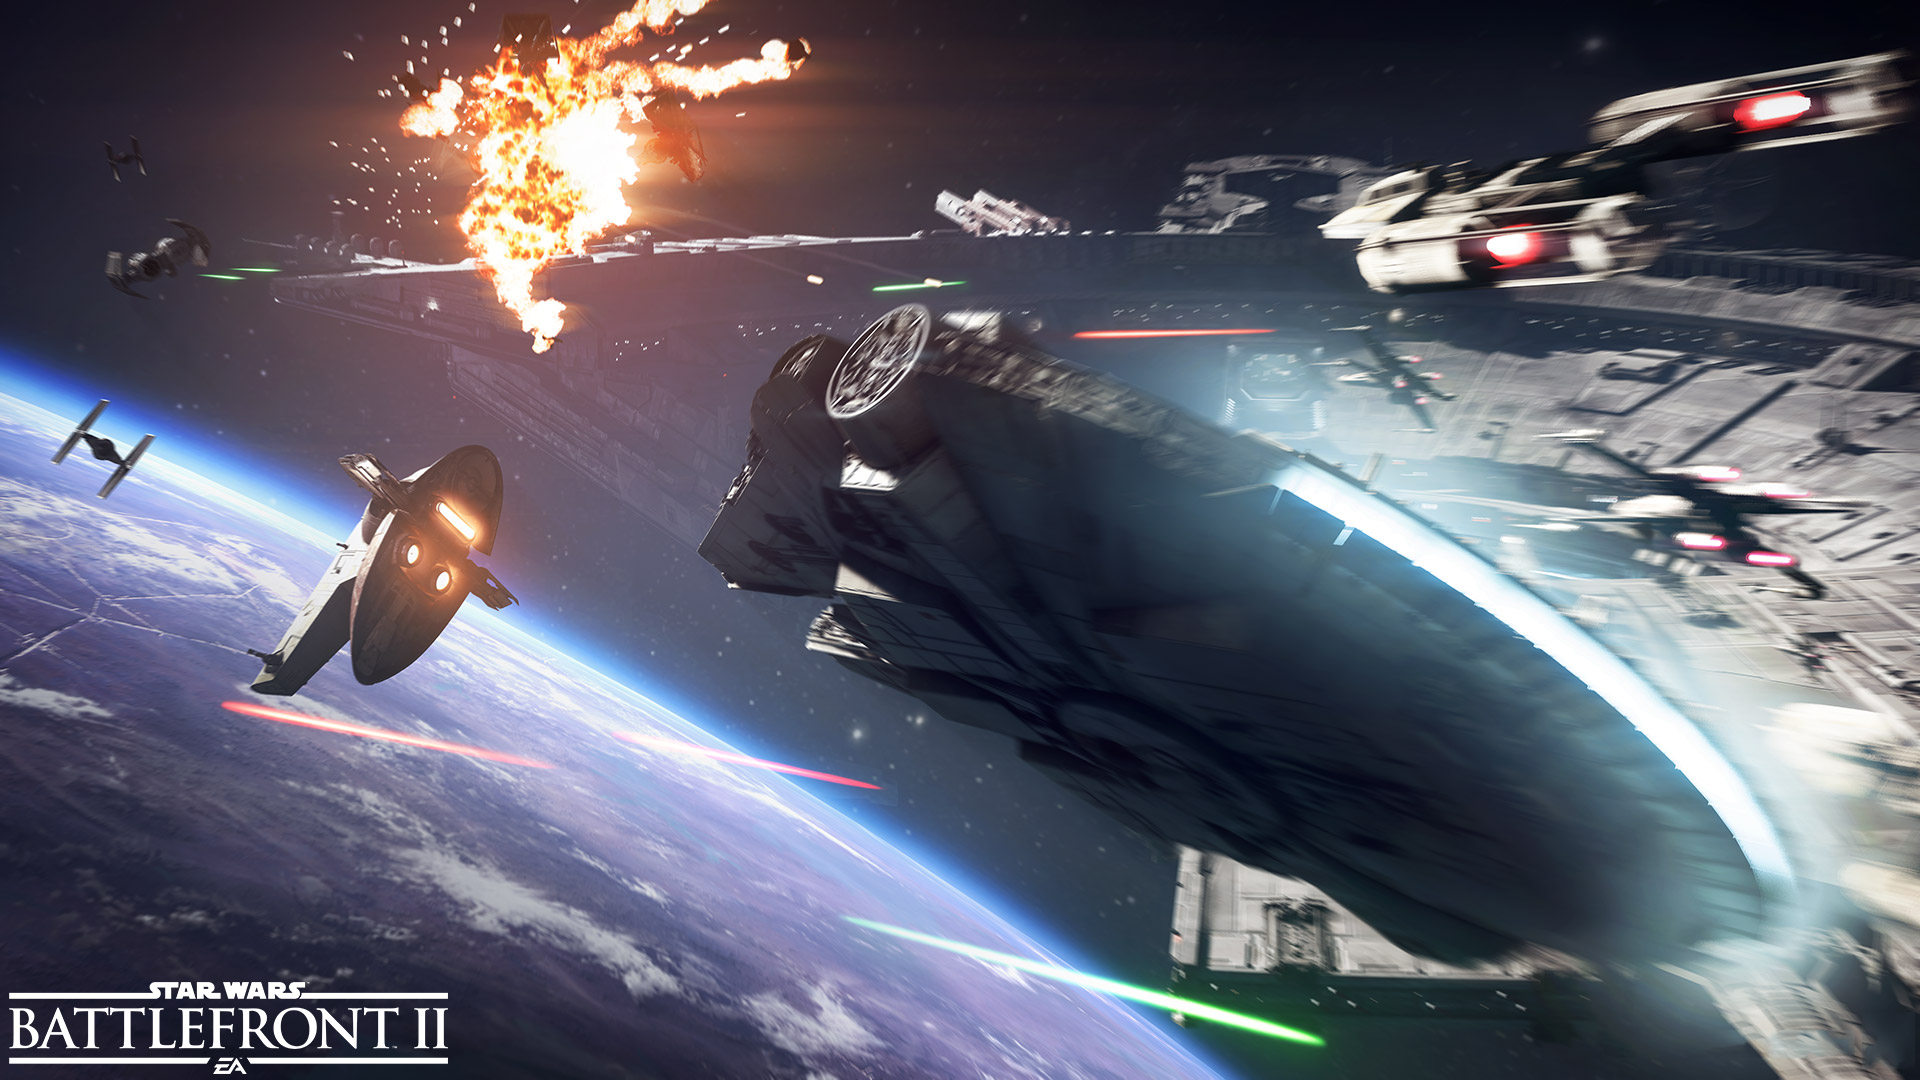 Star Wars Battlefront 2 wallpaper 10